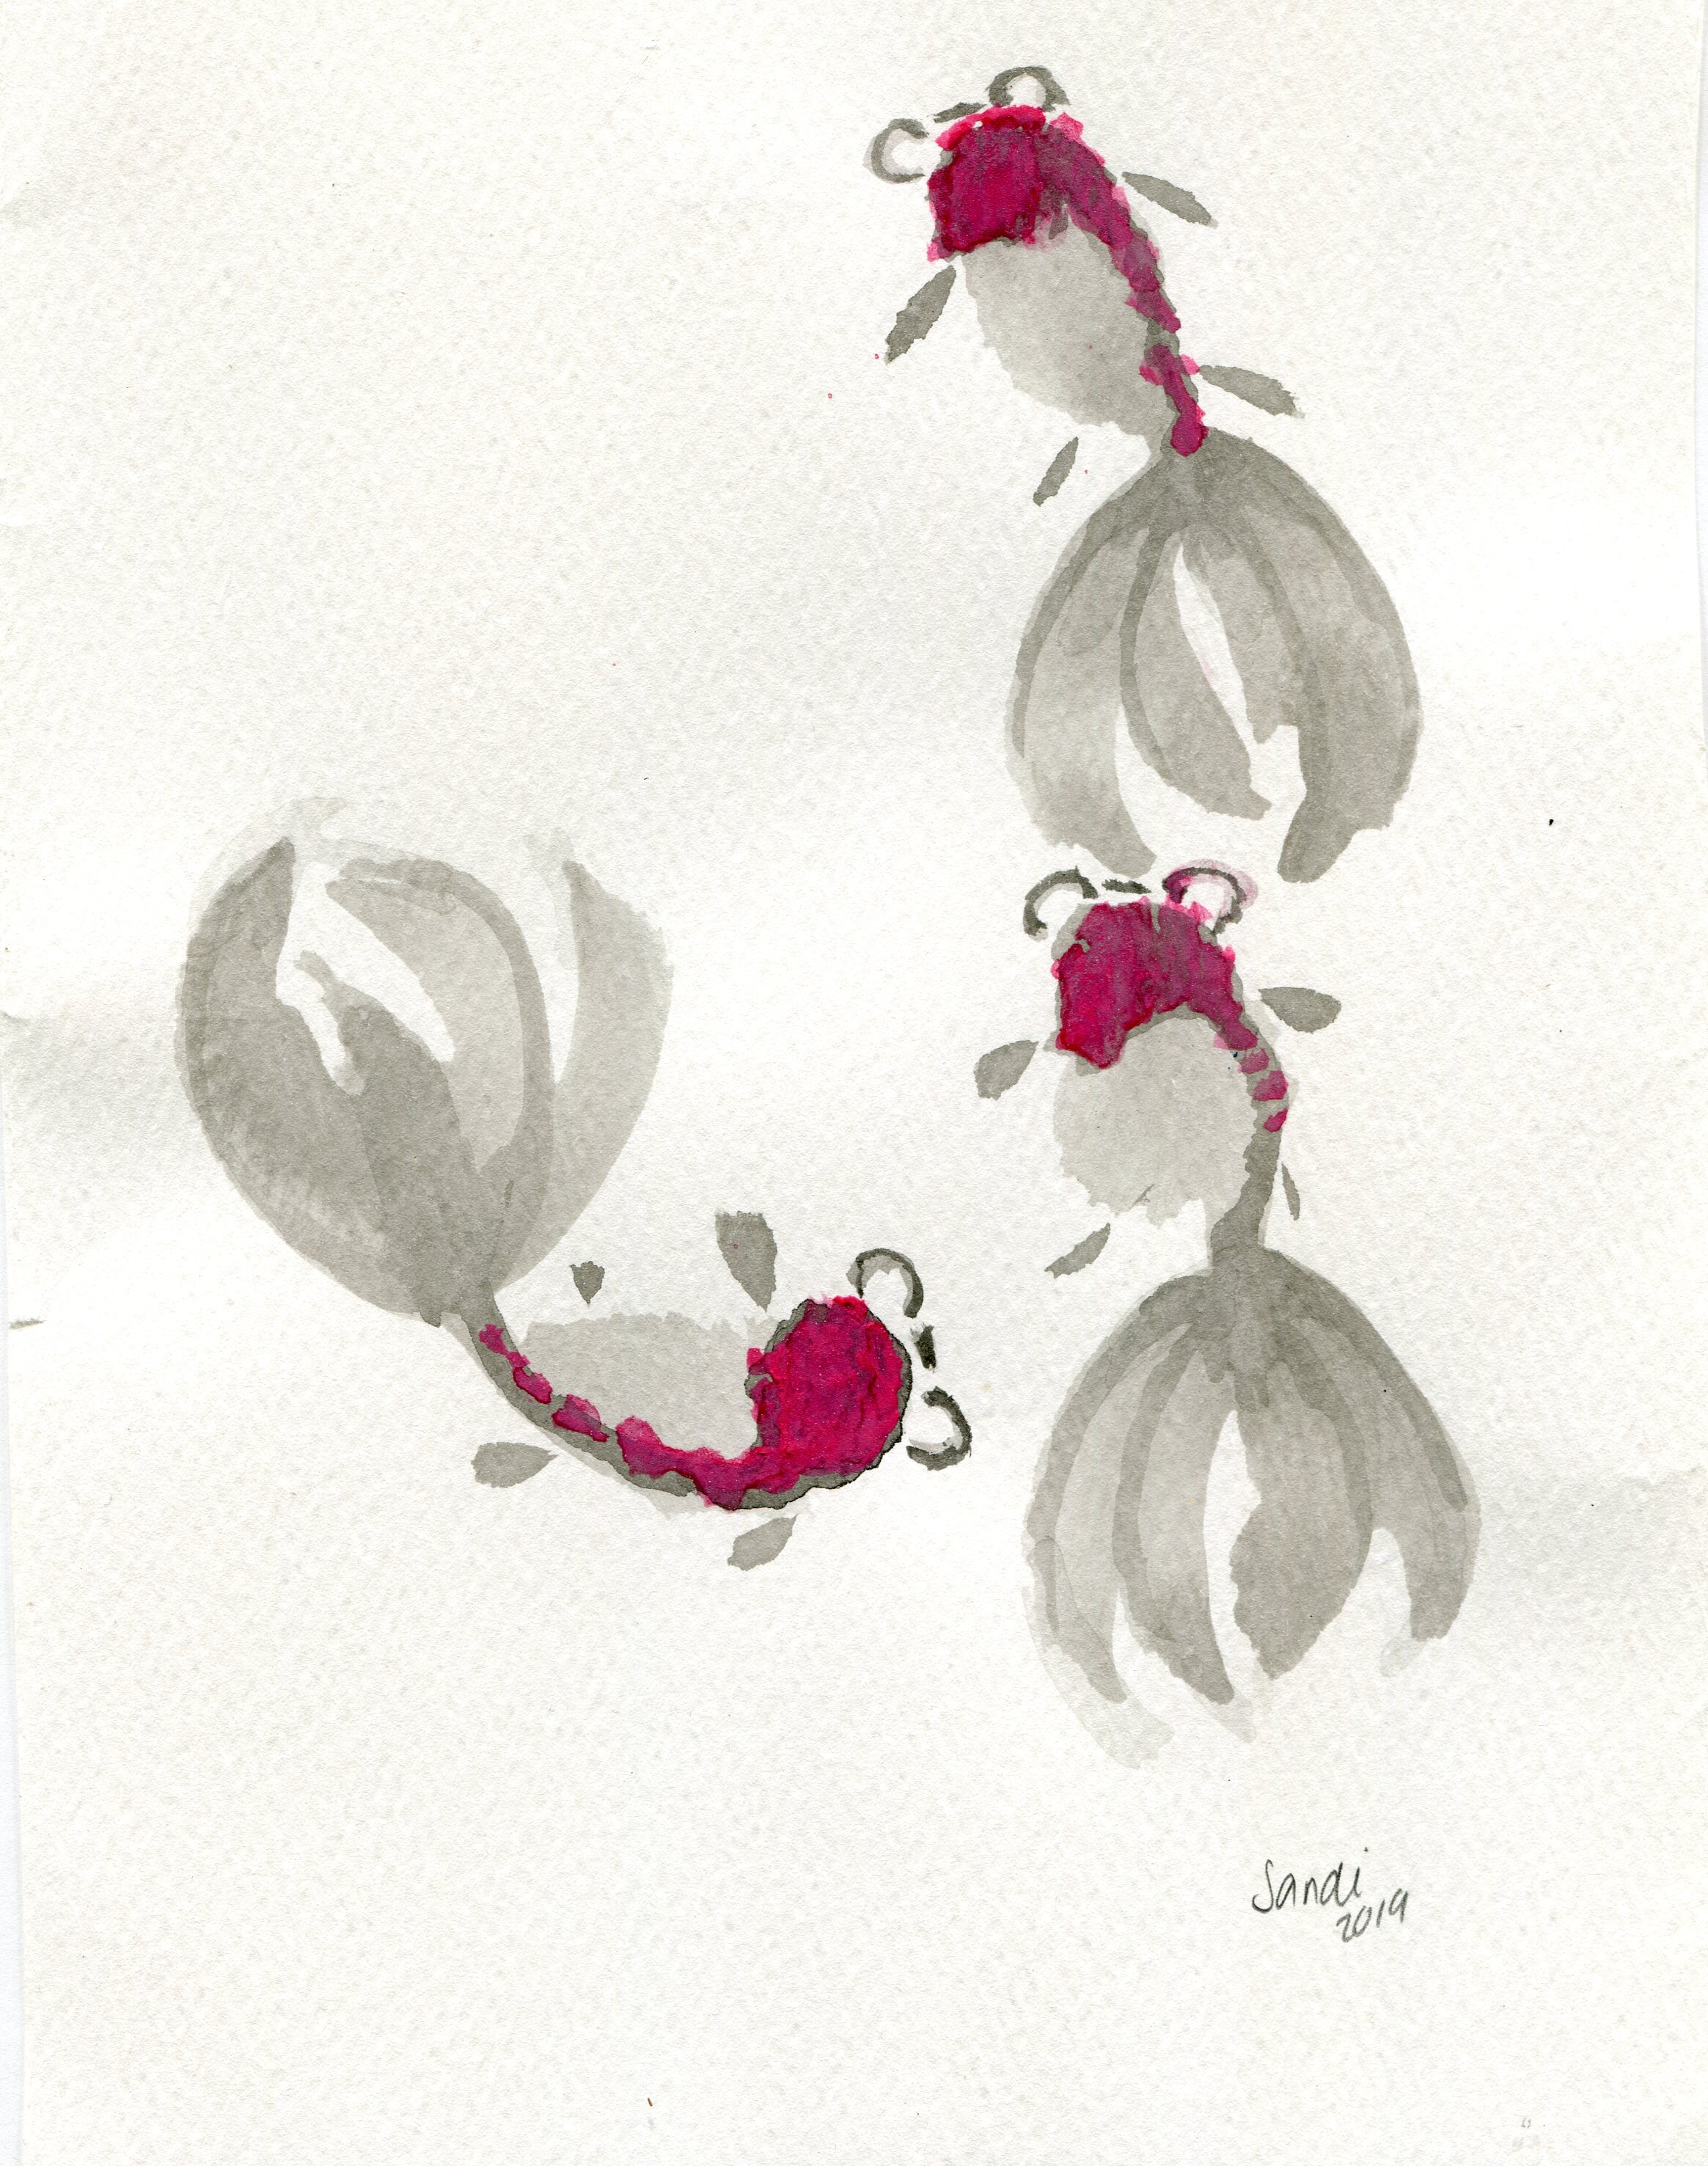 52b  Sandi Willows-Munro  Catch me if you can  ink and watercolour on paper